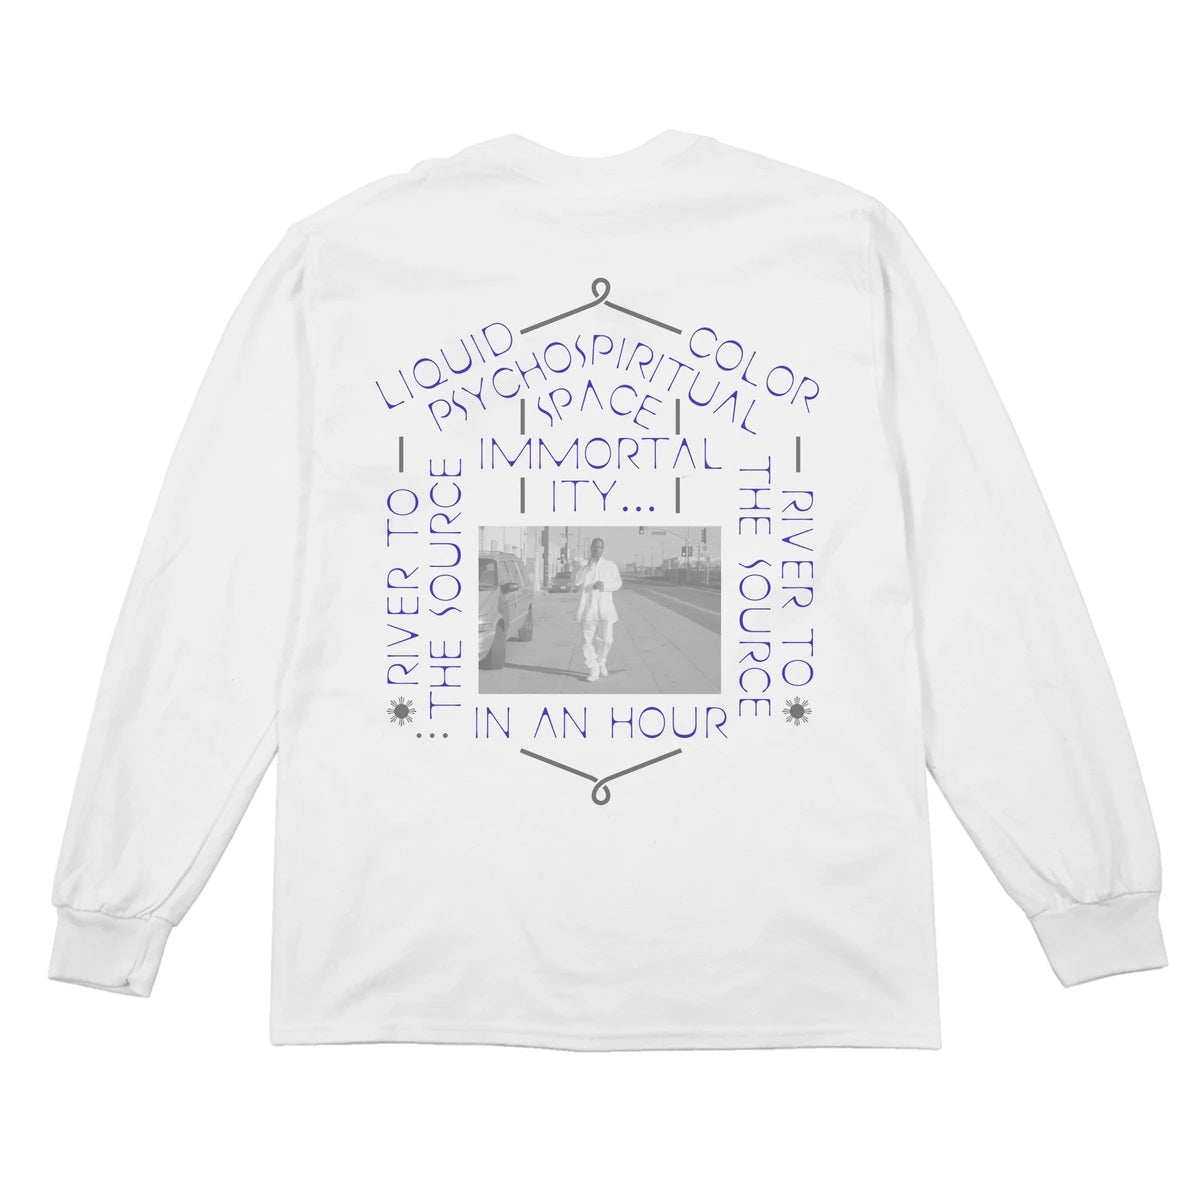 Total Luxury Spa - Thermal Bath Long Sleeve Tee -White